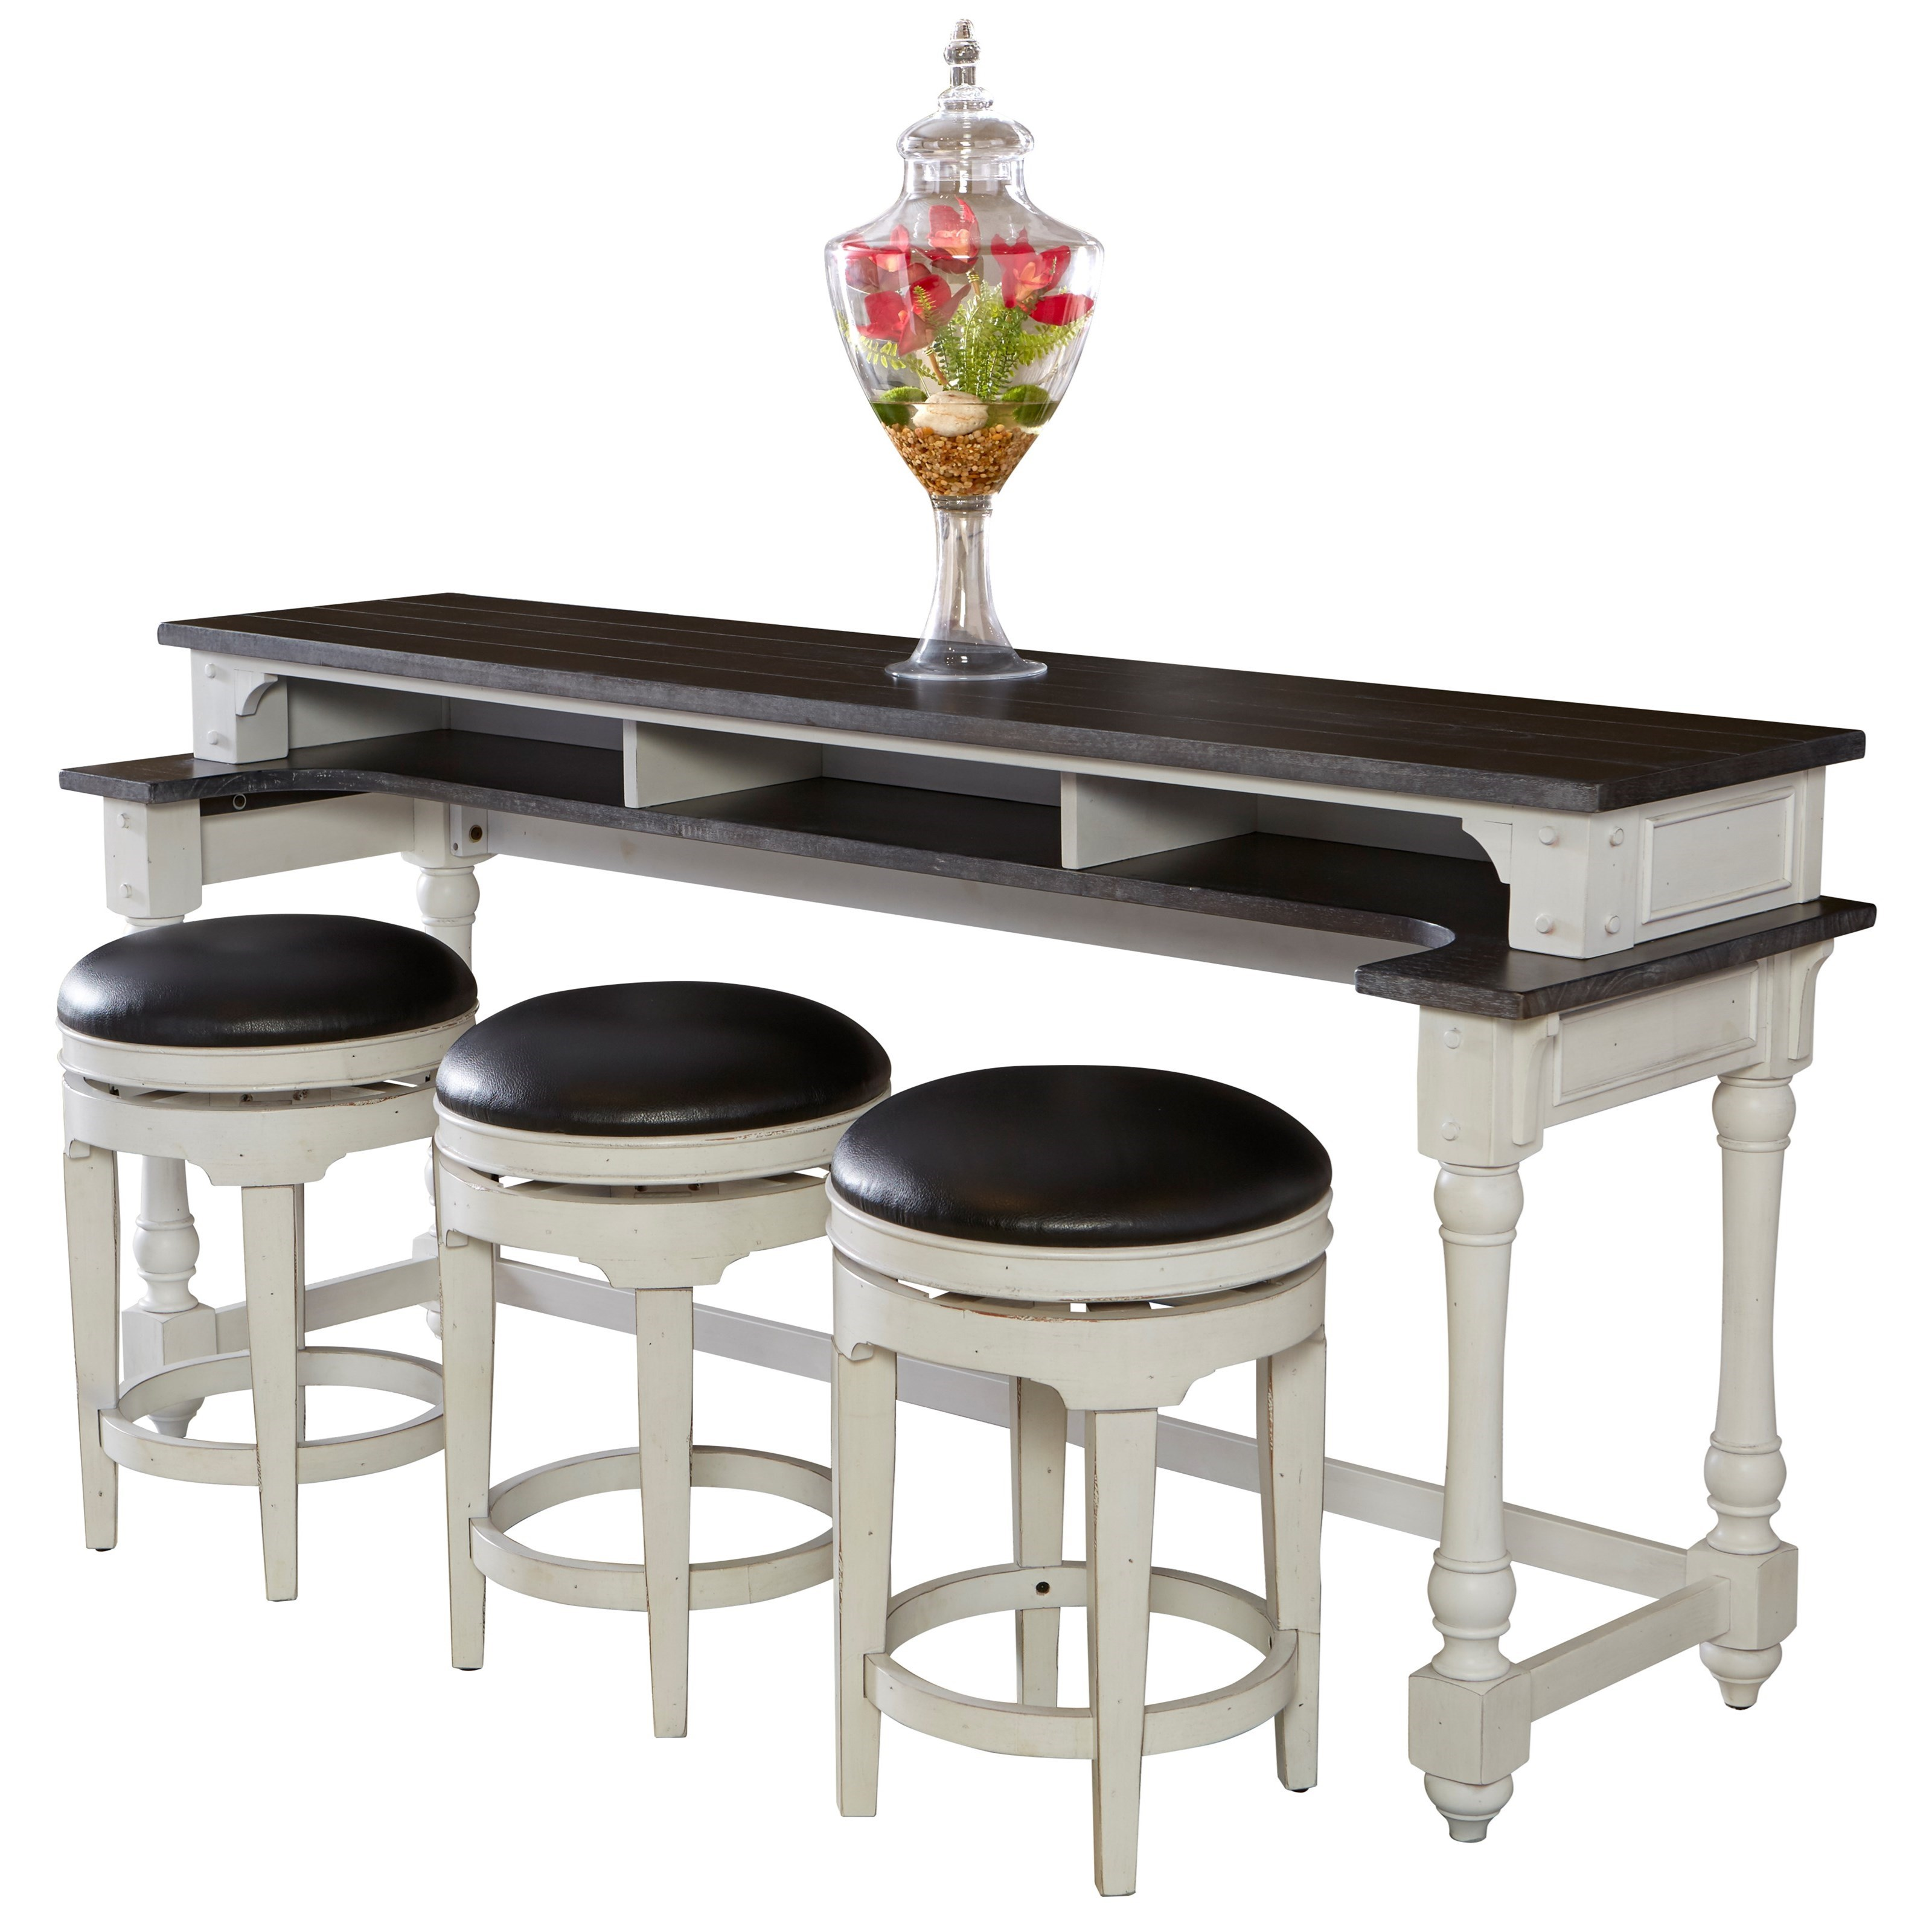 Table And Bar Stools Carriage House 4 Piece Counter Height Bar Table Set With Sofa Table And Swivel Stools By Sunny Designs At Suburban Furniture